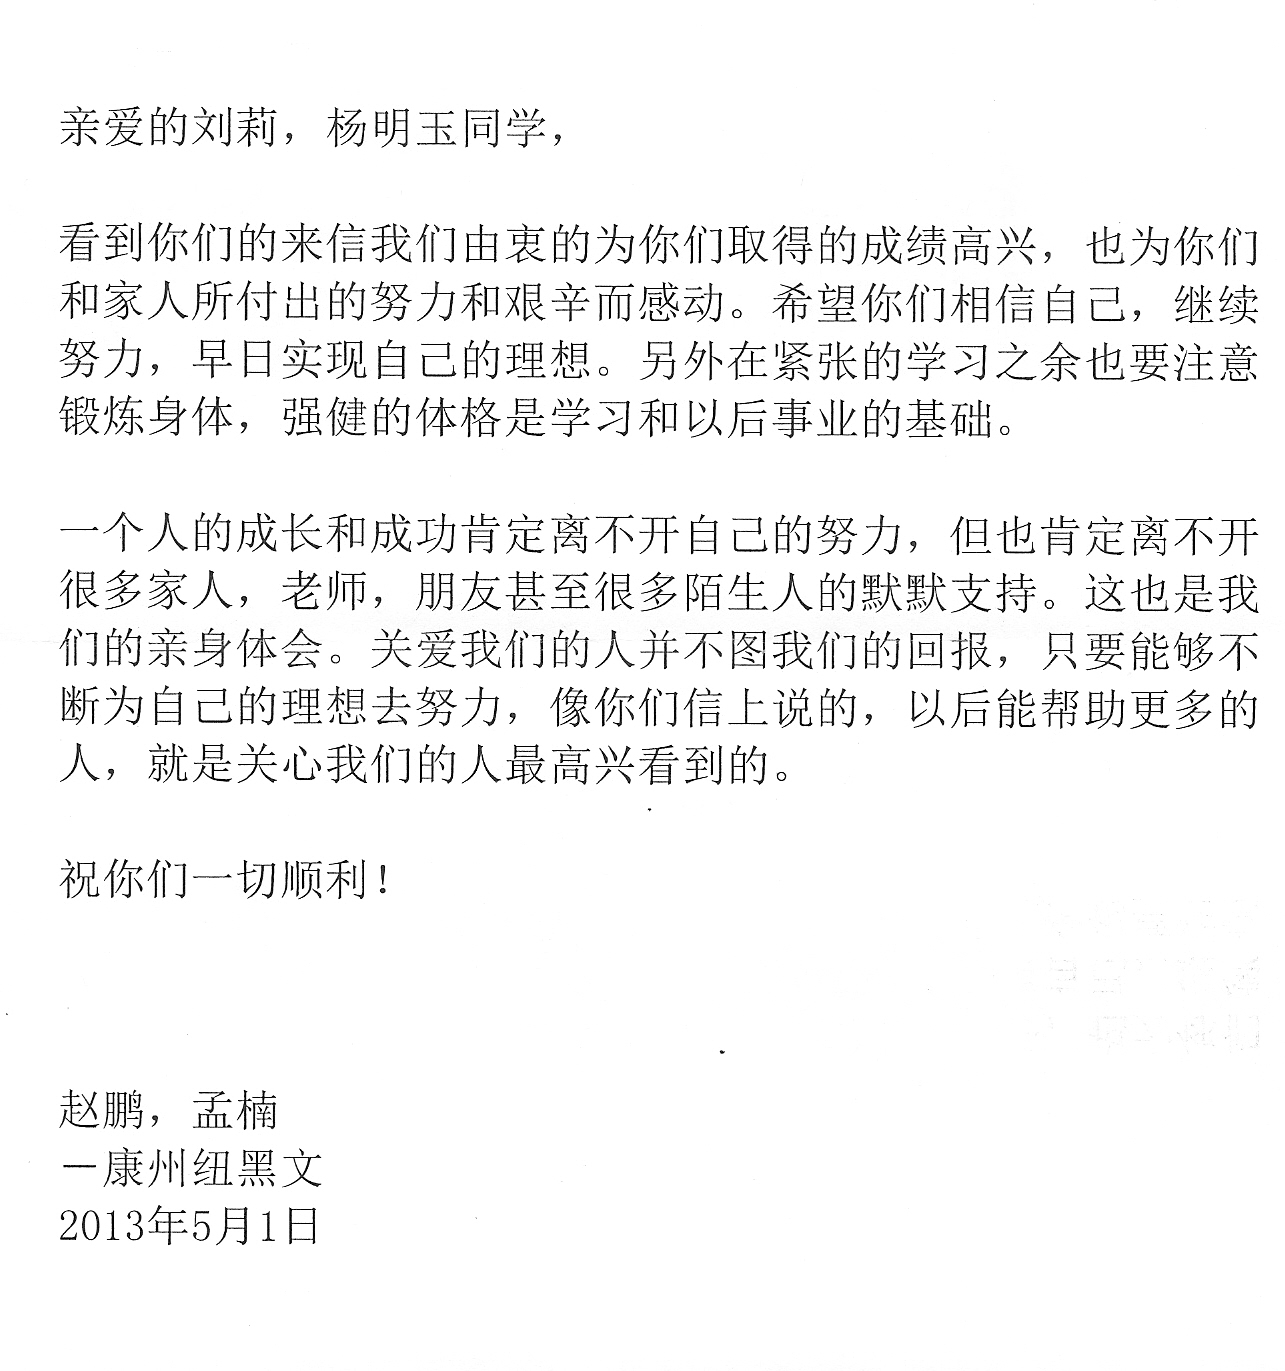 Hometown education foundation letters peng zhao and nan meng to their sponsored students liu li and yang mingyu 2013 aljukfo Images